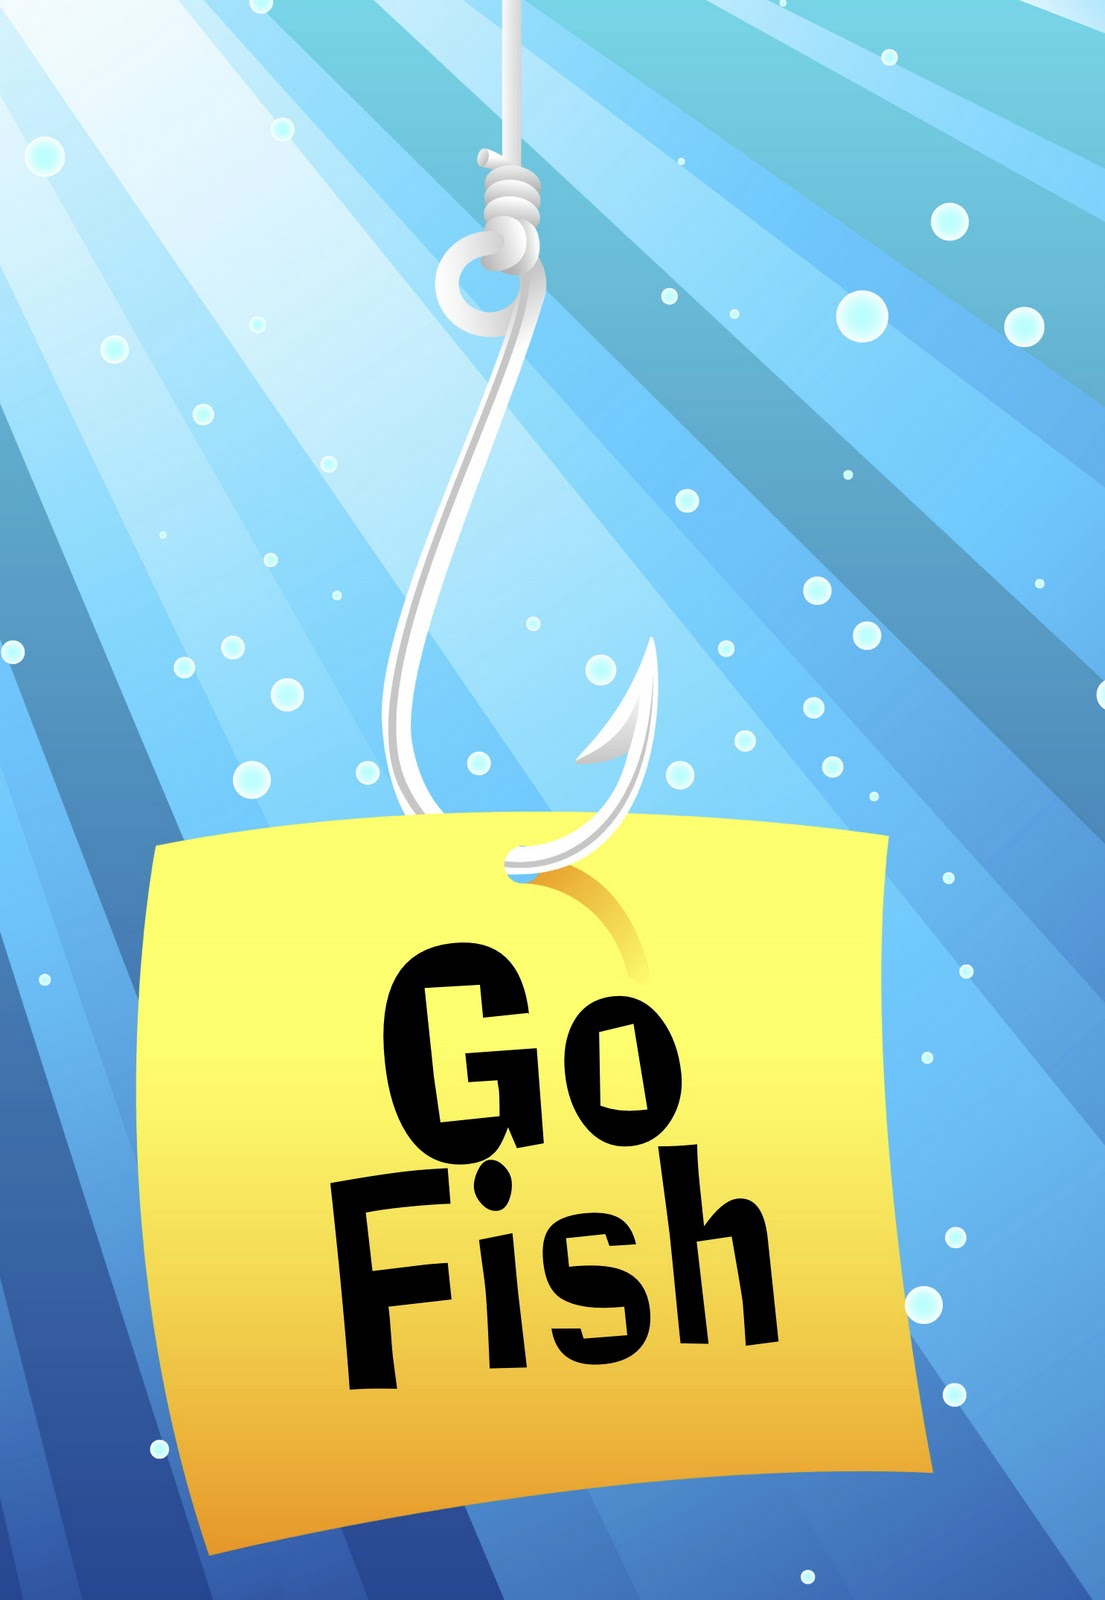 go fish dating search Fish dating is a uk dating  search features you could find exactly what you're looking for register for free with fish dating today and give it a go .